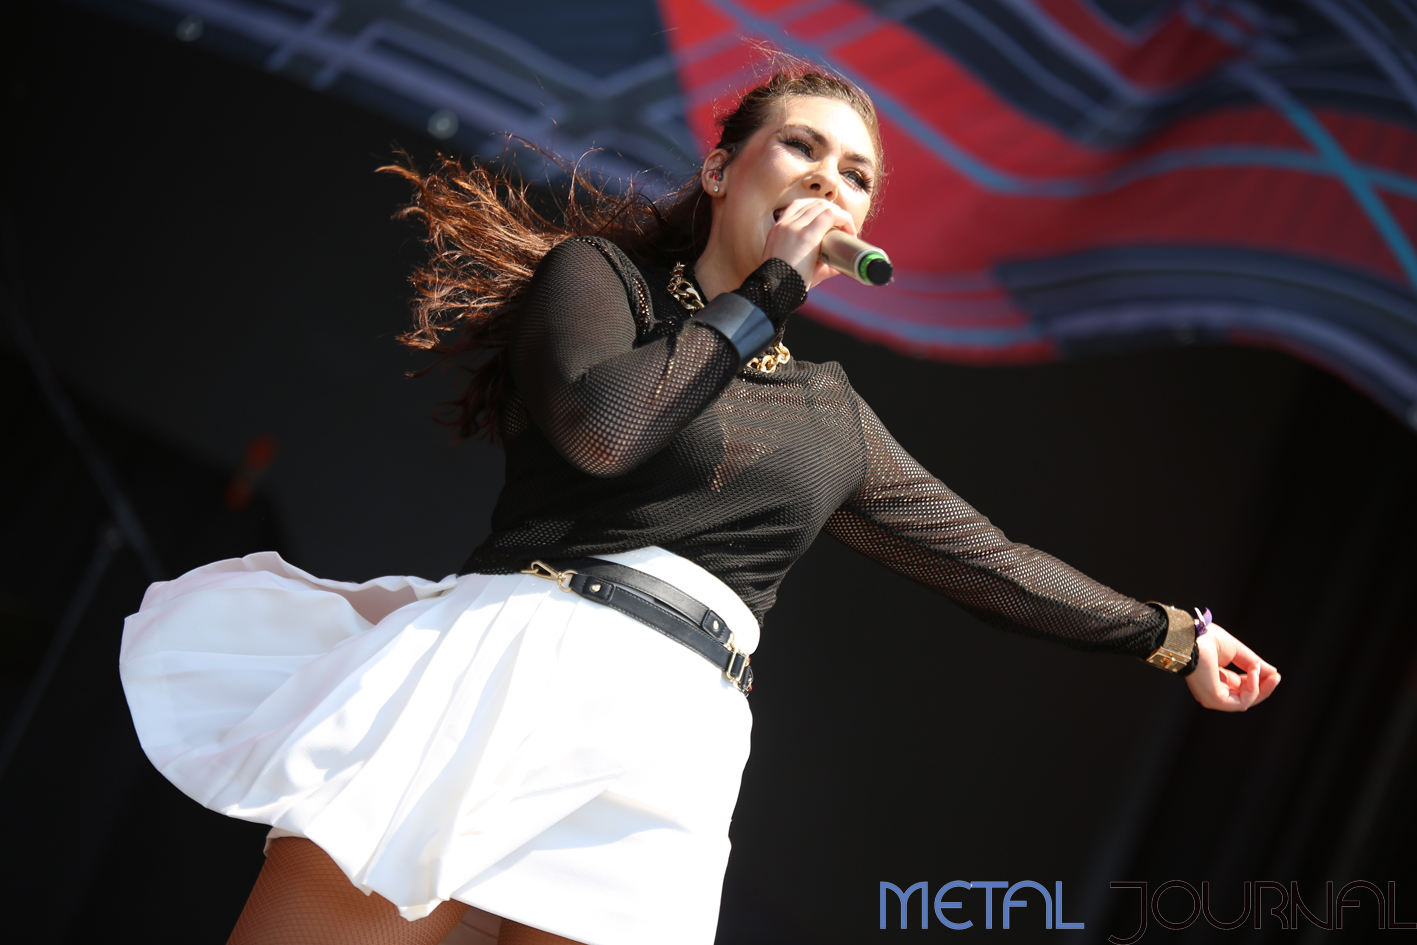 amaranthe rock fest 18 - metal journal pic 2